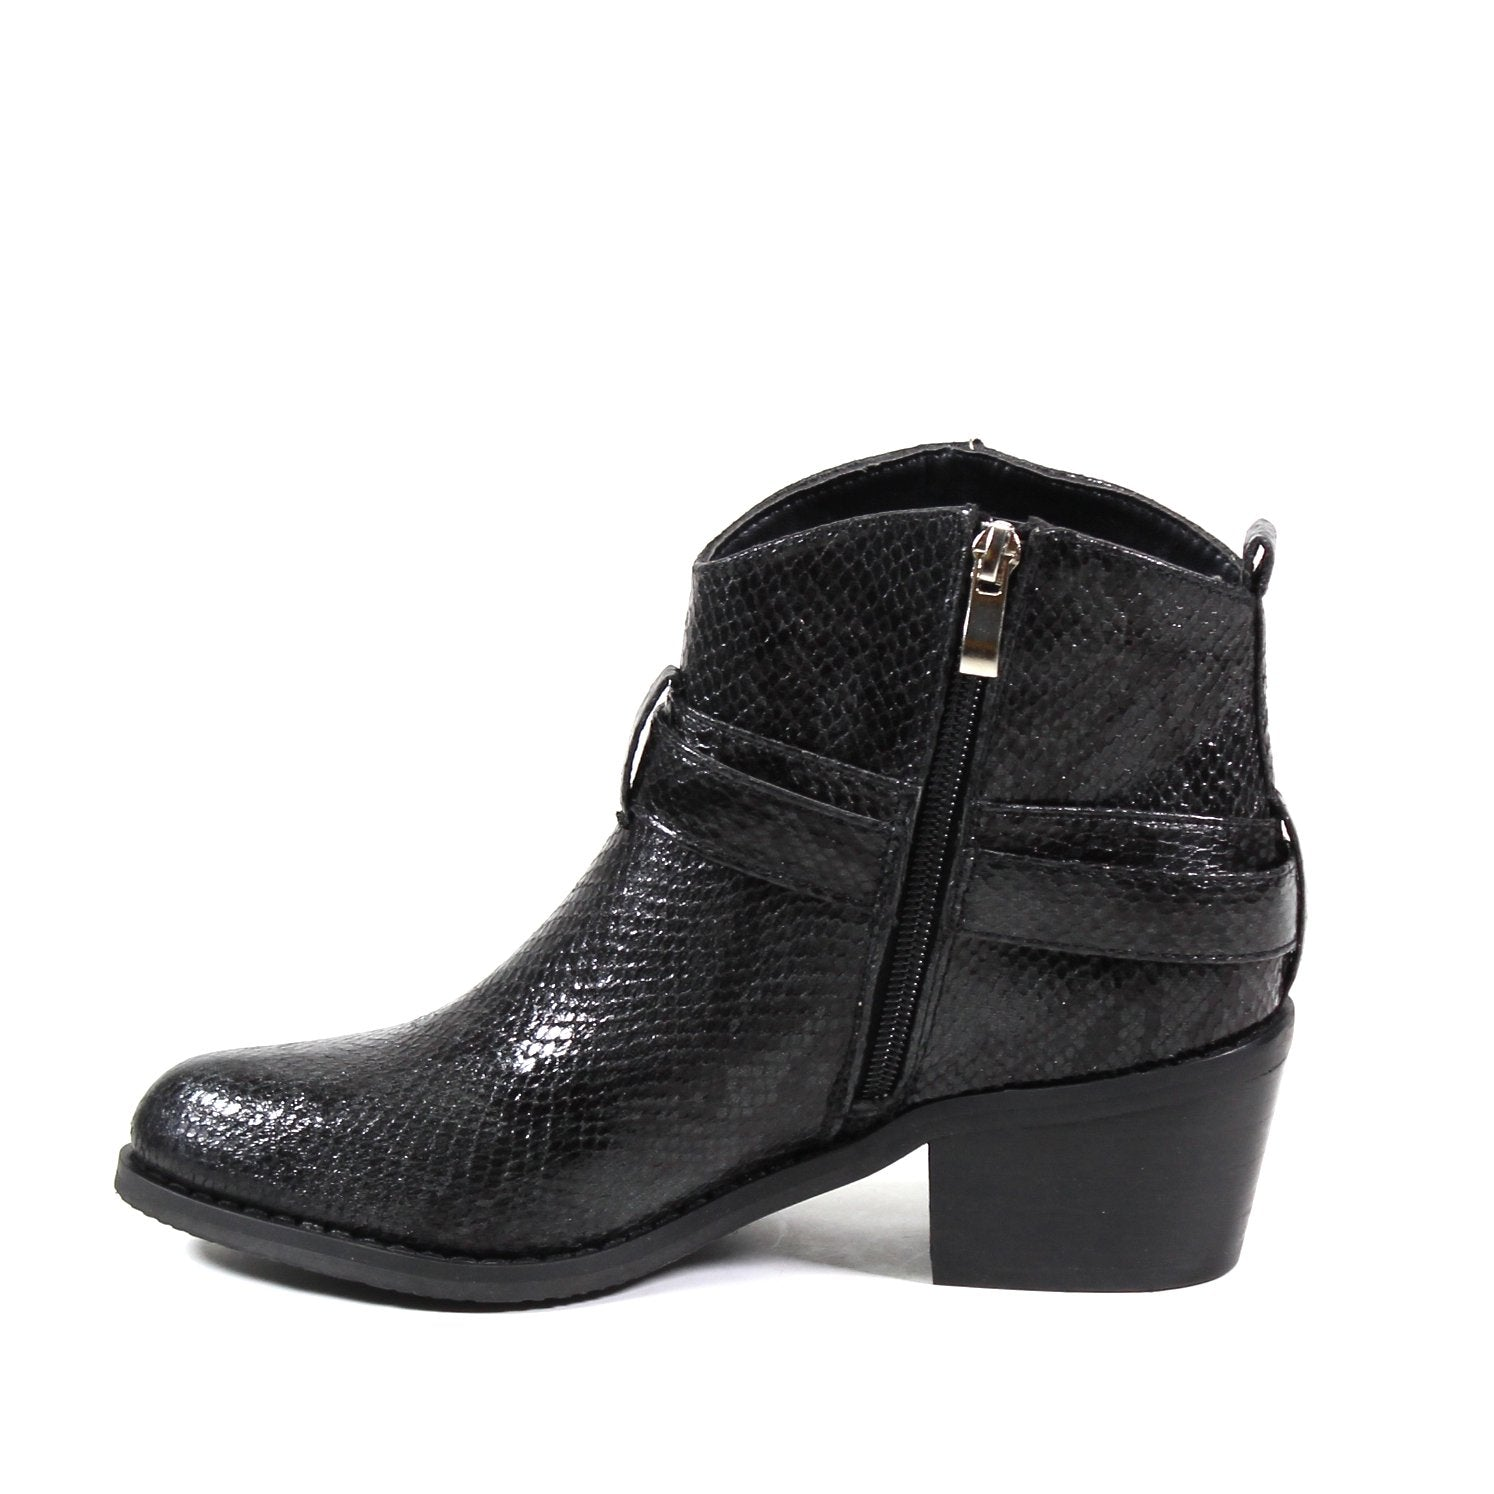 A curved topline and belted shaft compliments the western-style bootie set on a stacked block heel. Refresh the look of a belted bootie shaped with an almond toe, rear pull tab, buckle ornament, and inside zipper.